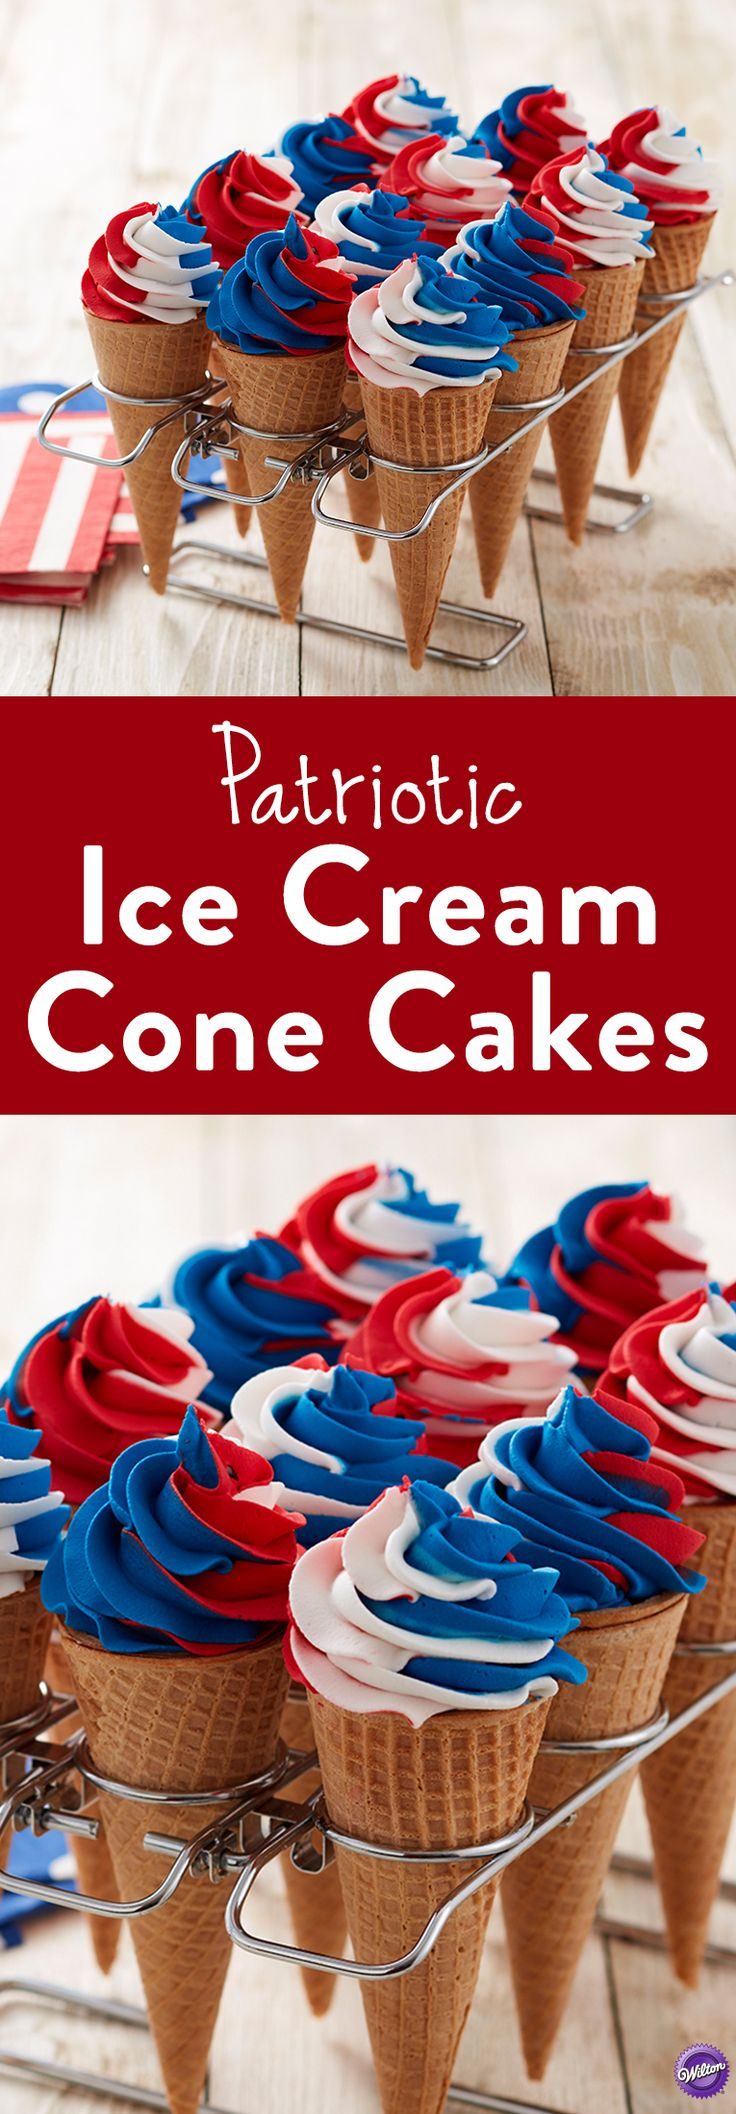 Red, White & Blue Ice Cream Cone Cakes - Here's a sweet alternate version to cupcakes-- ice cream cone cakes! Using the Color Swirl tri-color coupler, add swirls of red, white and blue icing and your patriotic treat is complete! These cake cones are the perfect 4th of July dessert treats or serve at kids' parties —easy to hold and eat!